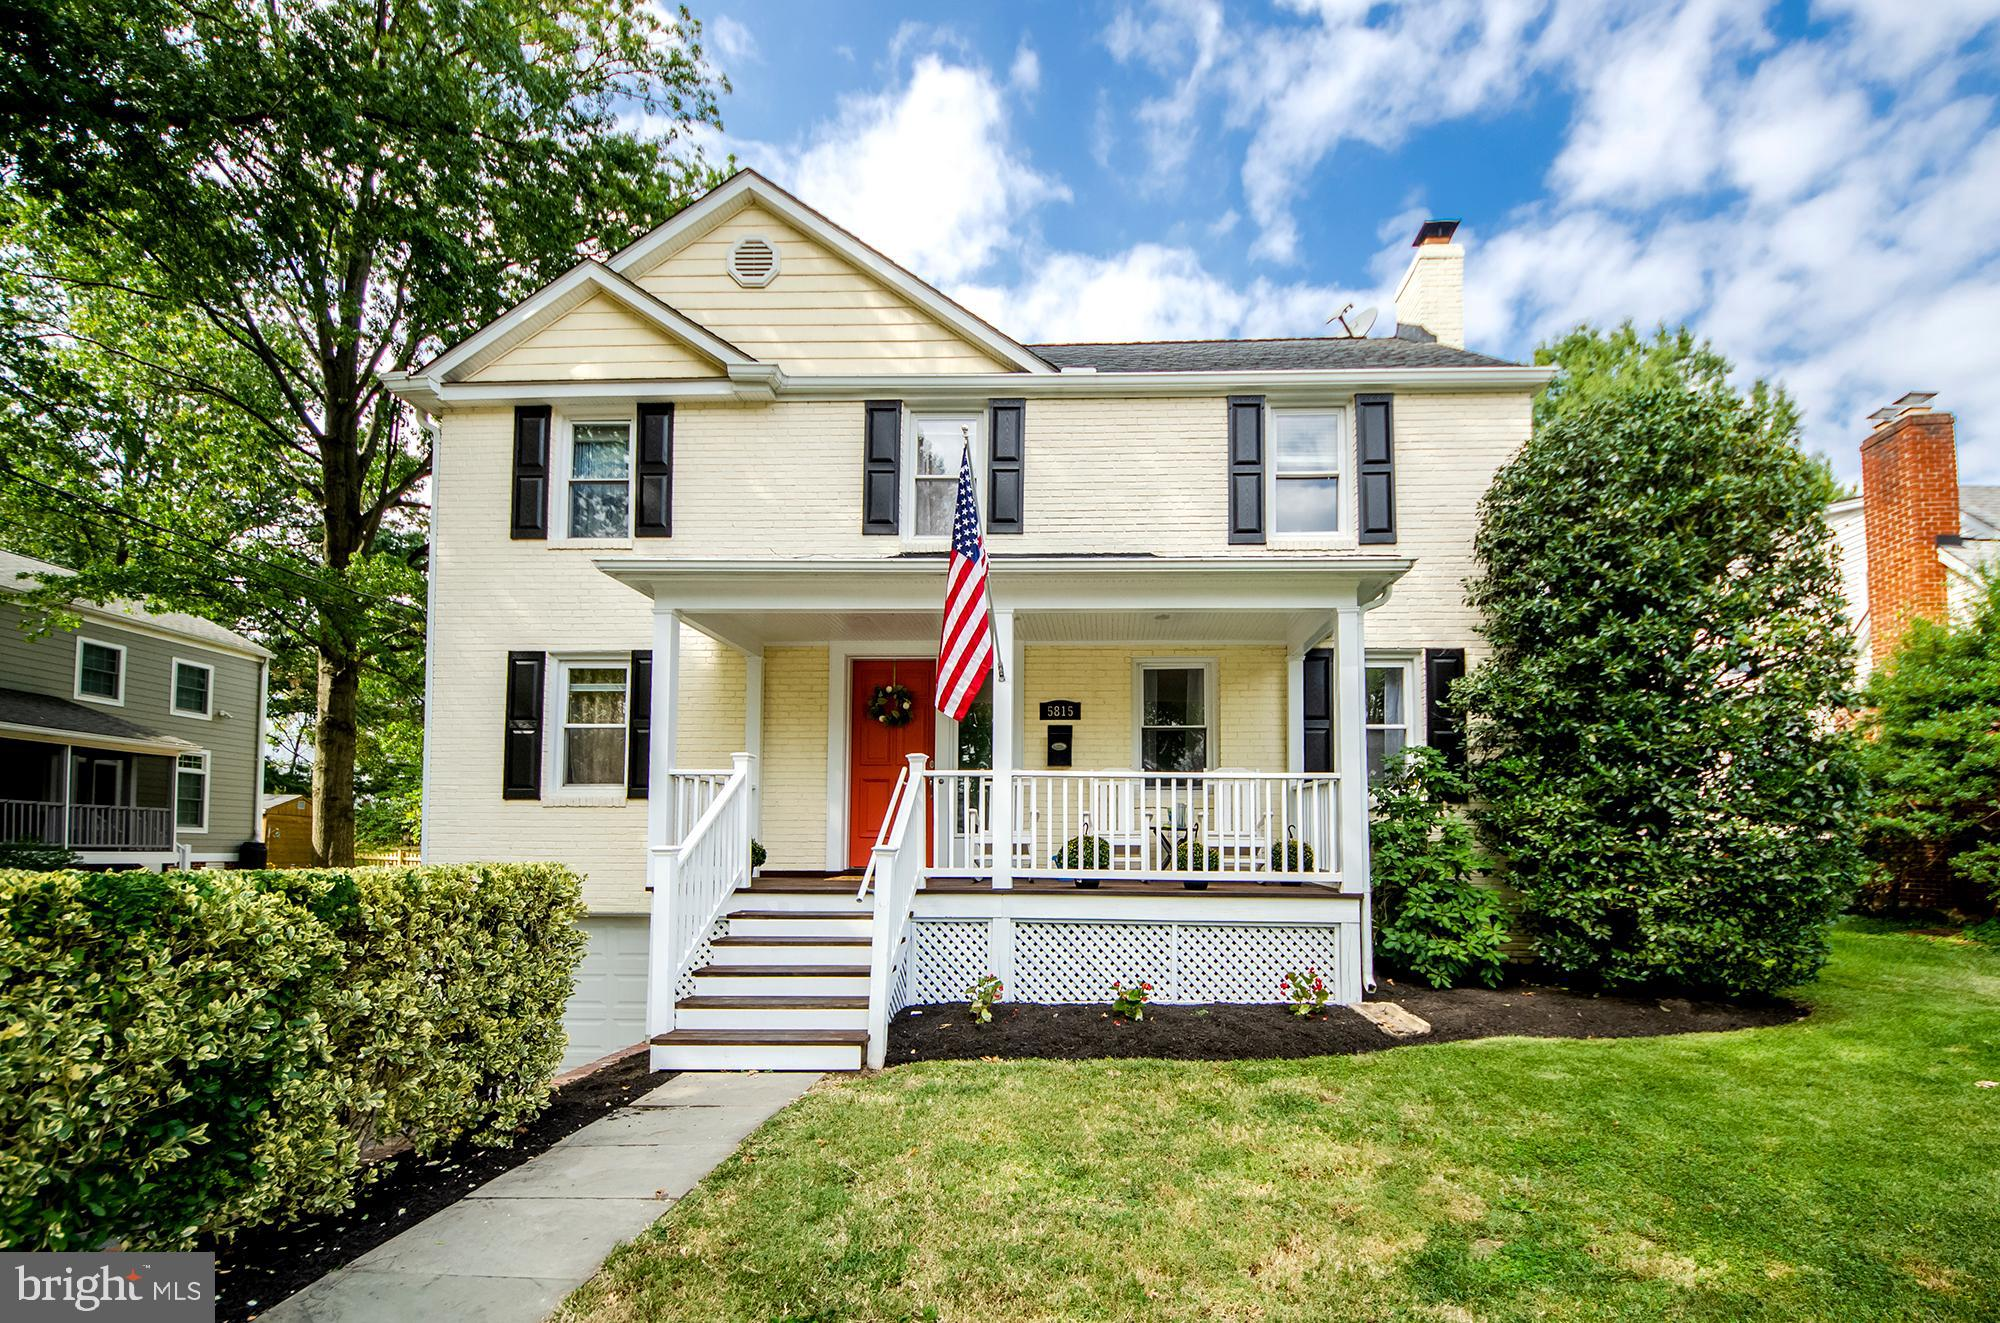 5815 19TH STREET N, ARLINGTON, VA 22205